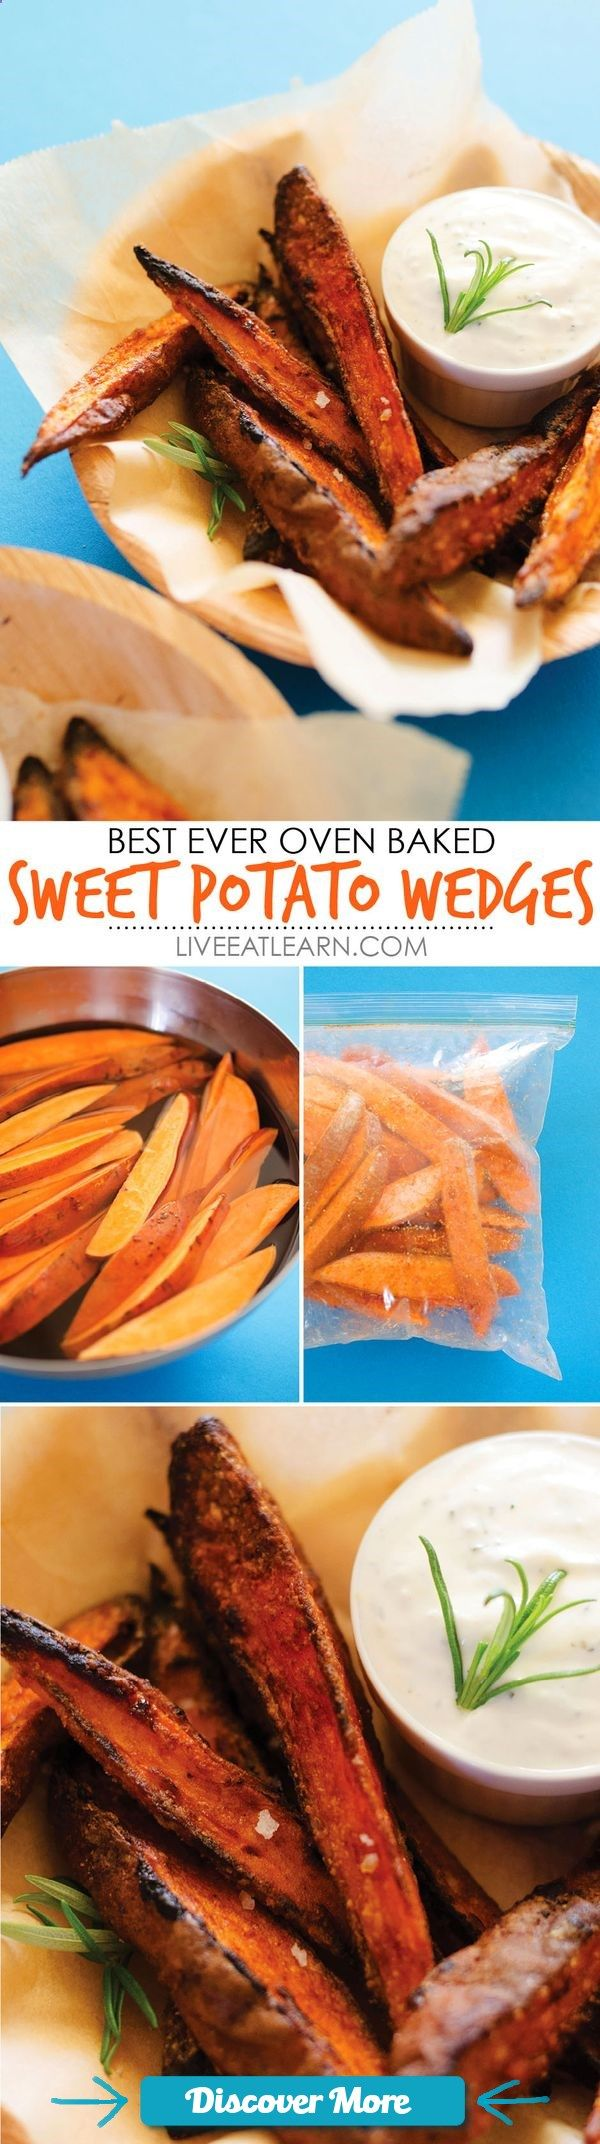 This healthy Oven-Baked Sweet Potato Wedges recipe makes crispy on the outside, tender on the inside, dipped in an herby garlic yogurt sauce fries that youre going to love! Packed with nutrients and low in fat, these are the perfect flavorful vegetarian side dish to your meal or snack for the fall. // Live Eat Learn